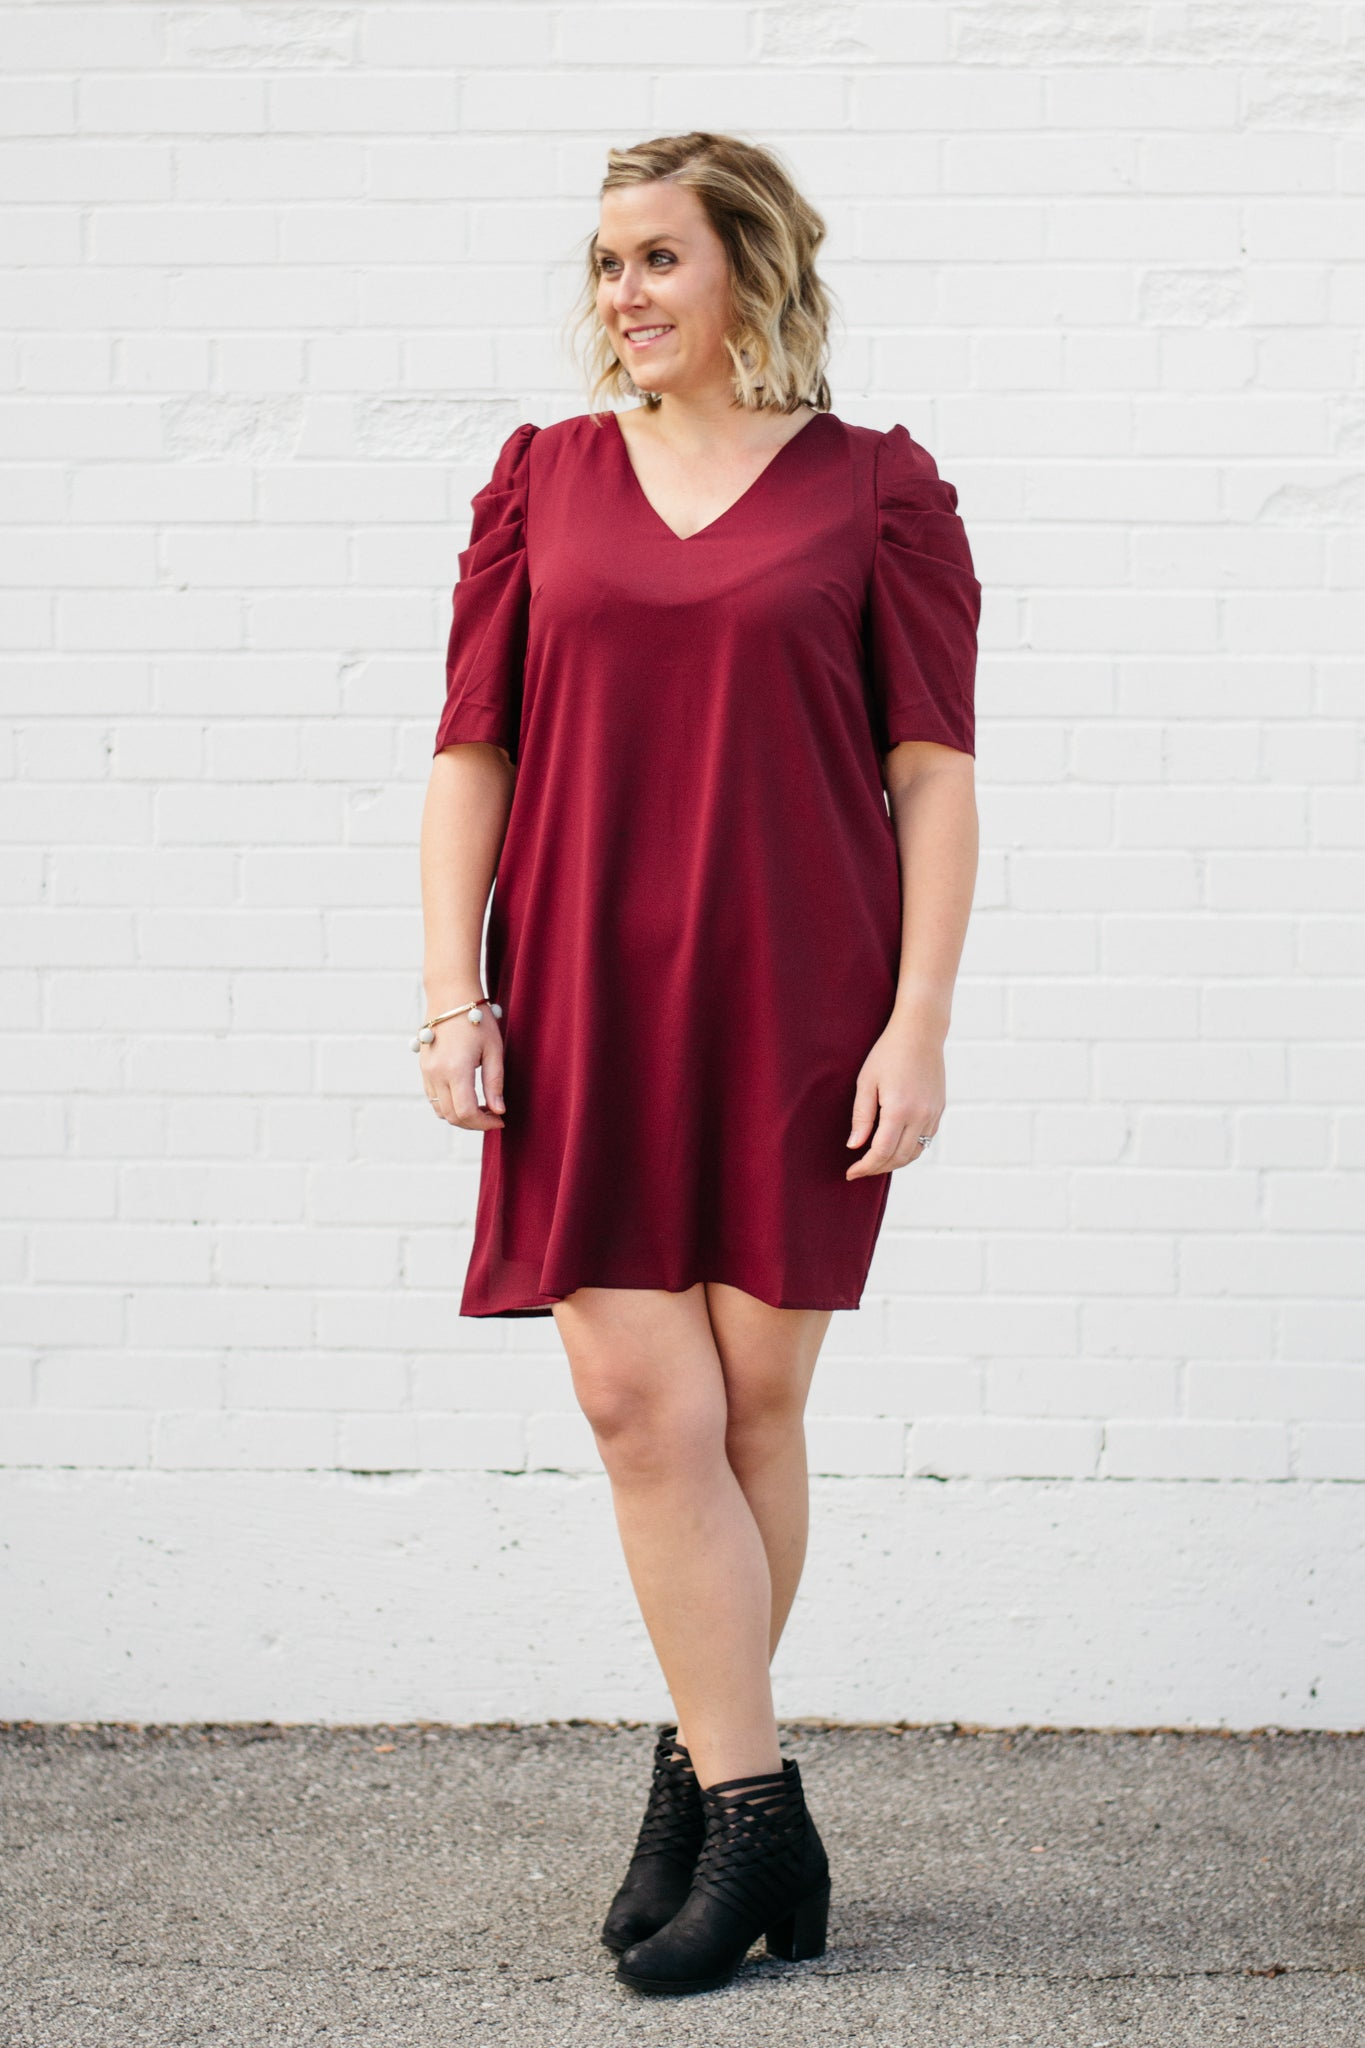 Fall V Neck Dress with Ruffle Sleeve Detail